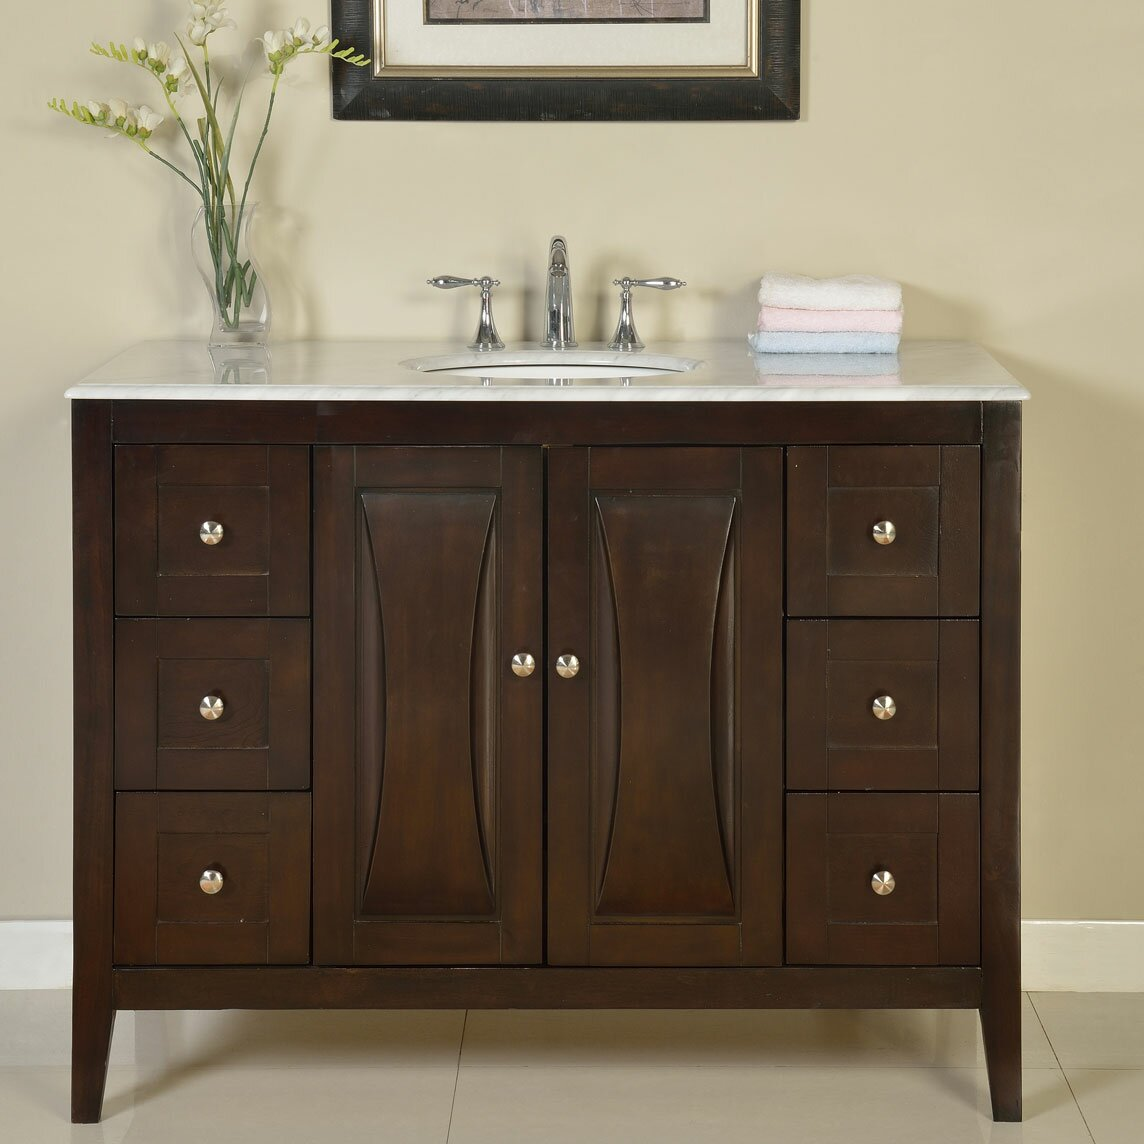 Silkroad exclusive 48 single sink cabinet bathroom vanity for Single bathroom vanity